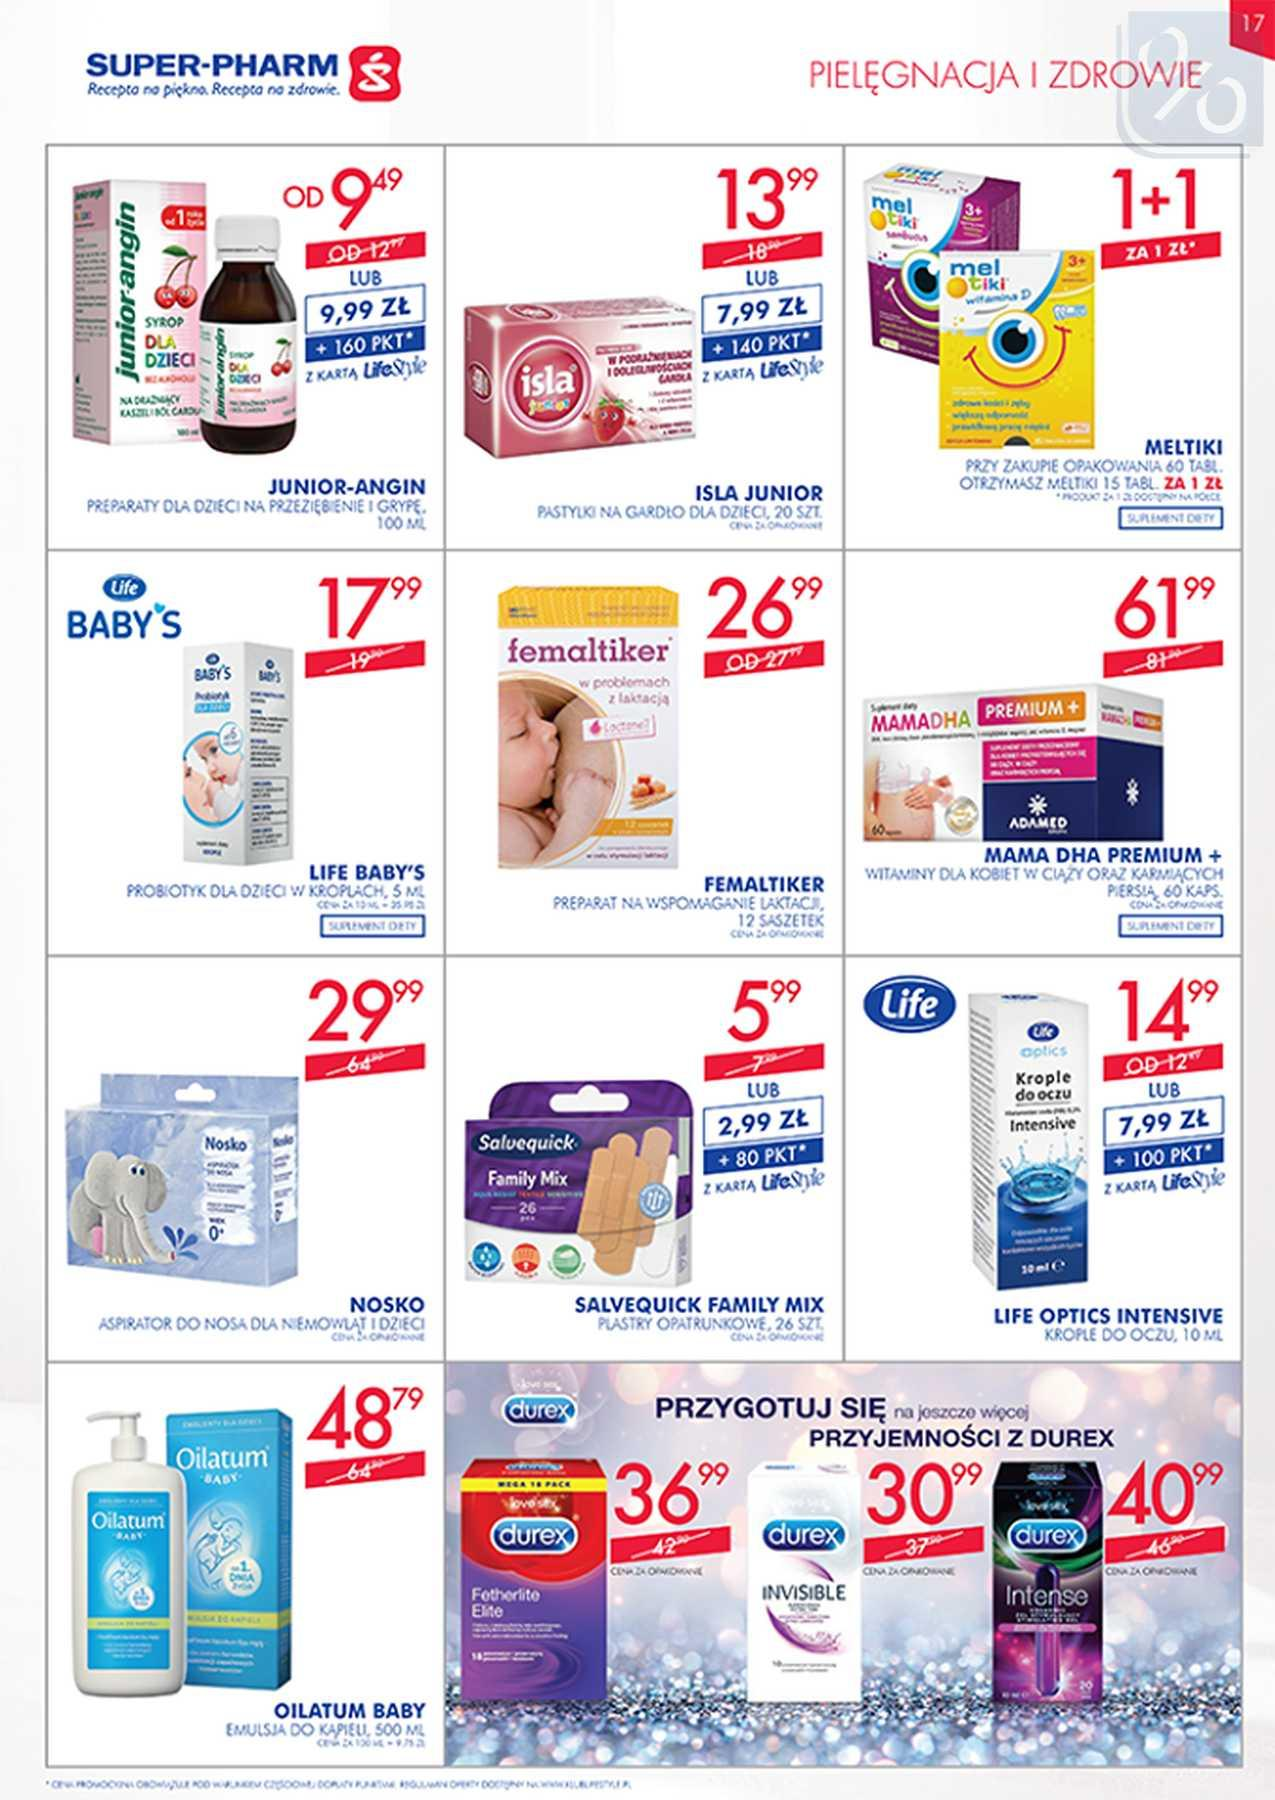 Gazetka promocyjna Superpharm do 23/01/2019 str.16